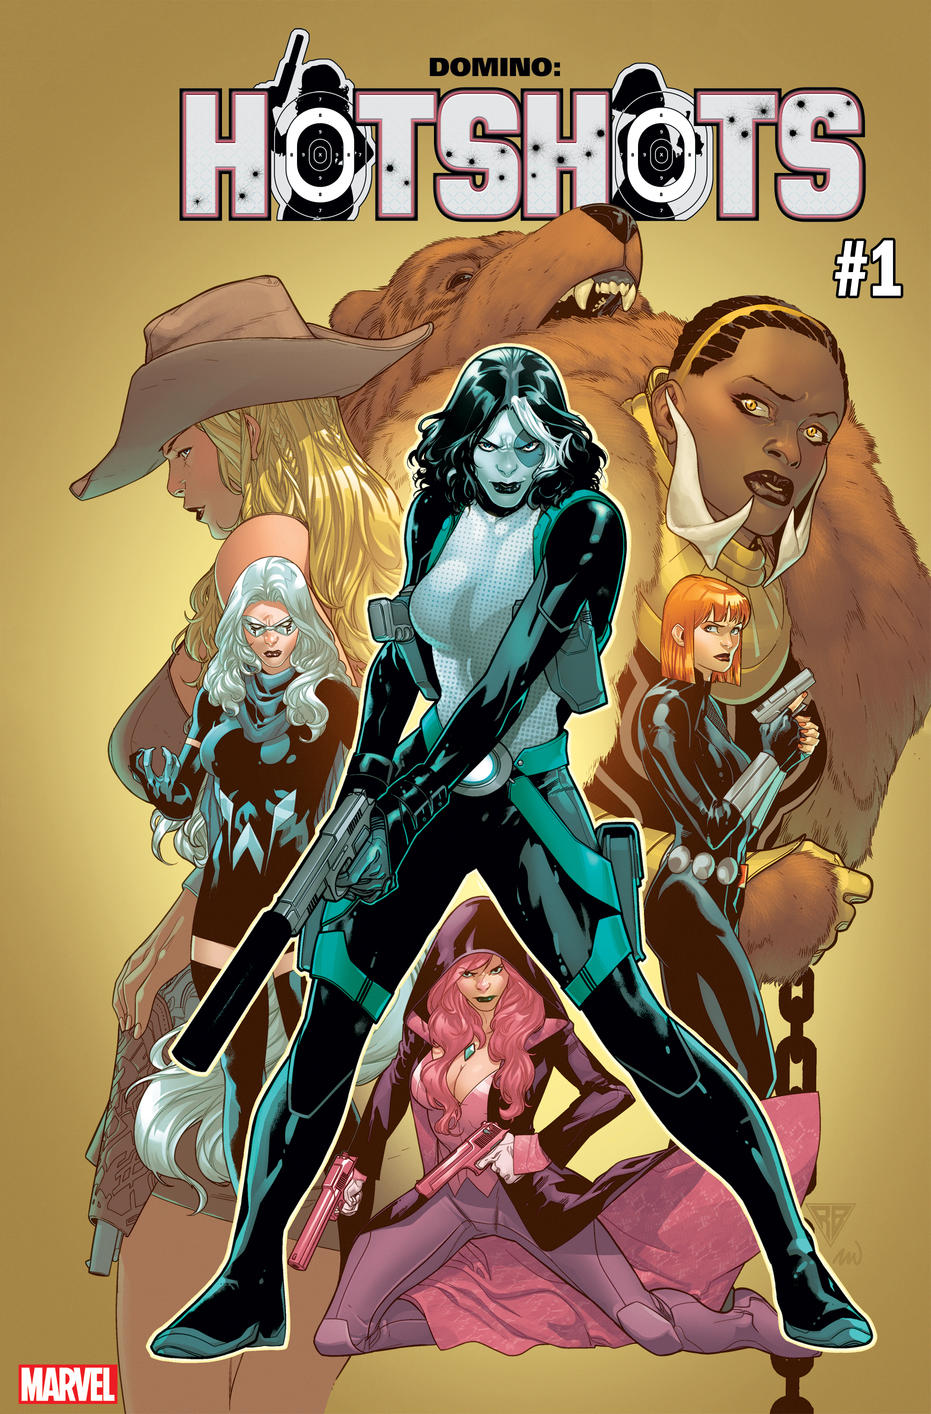 Domino Hotshots #1 cover